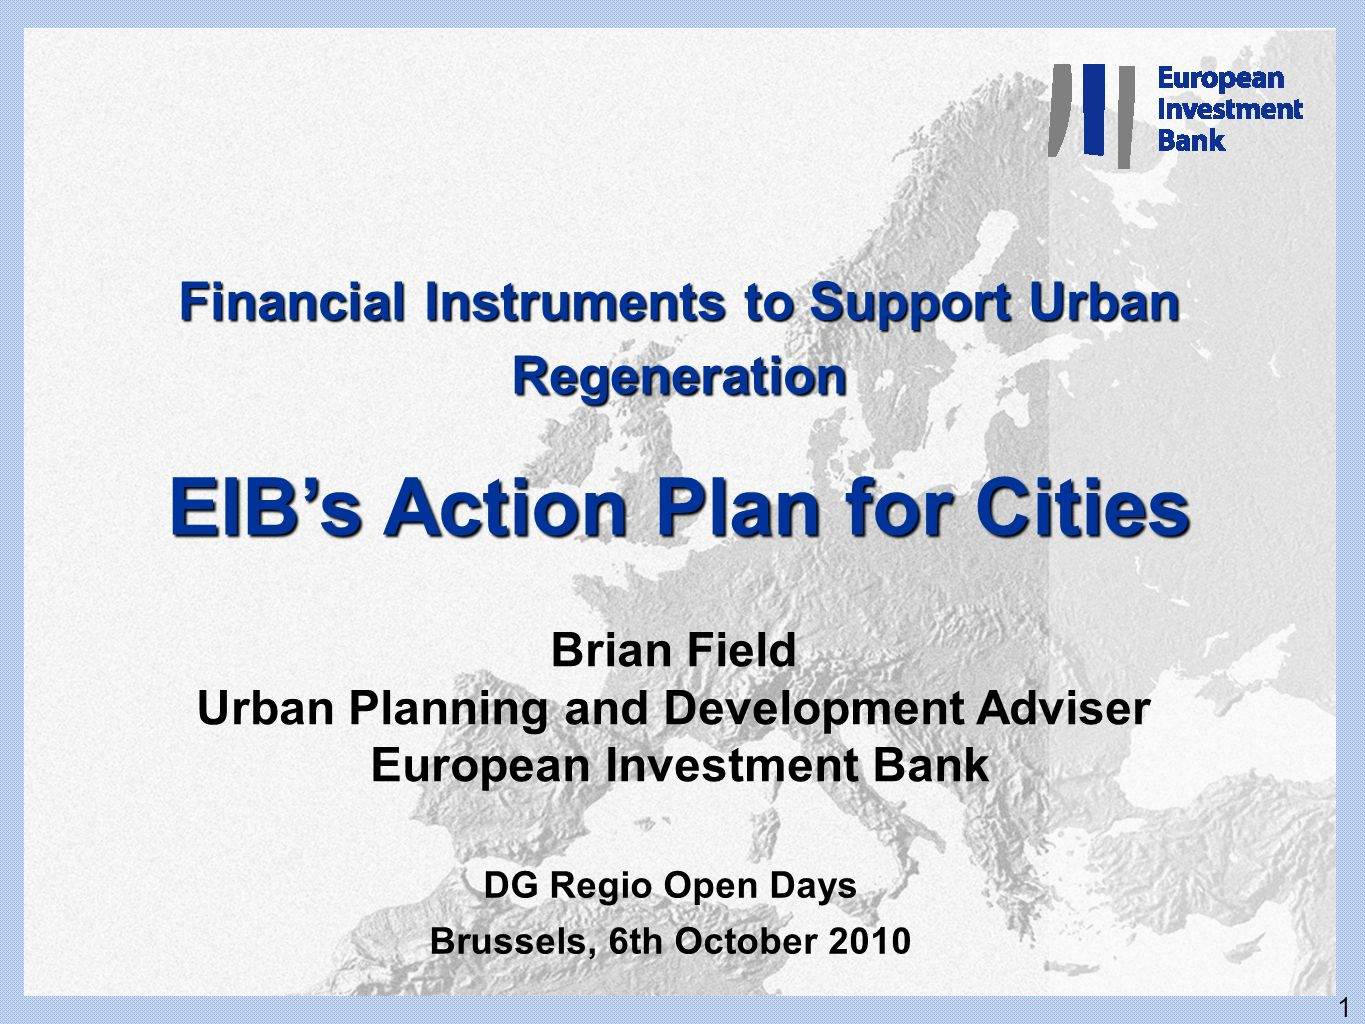 1 JESSICA and EIB financing of Cities Working with the EIB Katowice, January 11 and 12, 2007 Frank Lee January 2007 Financial Instruments to Support Urban Regeneration EIBs Action Plan for Cities Brian Field Urban Planning and Development Adviser European Investment Bank DG Regio Open Days Brussels, 6th October 2010